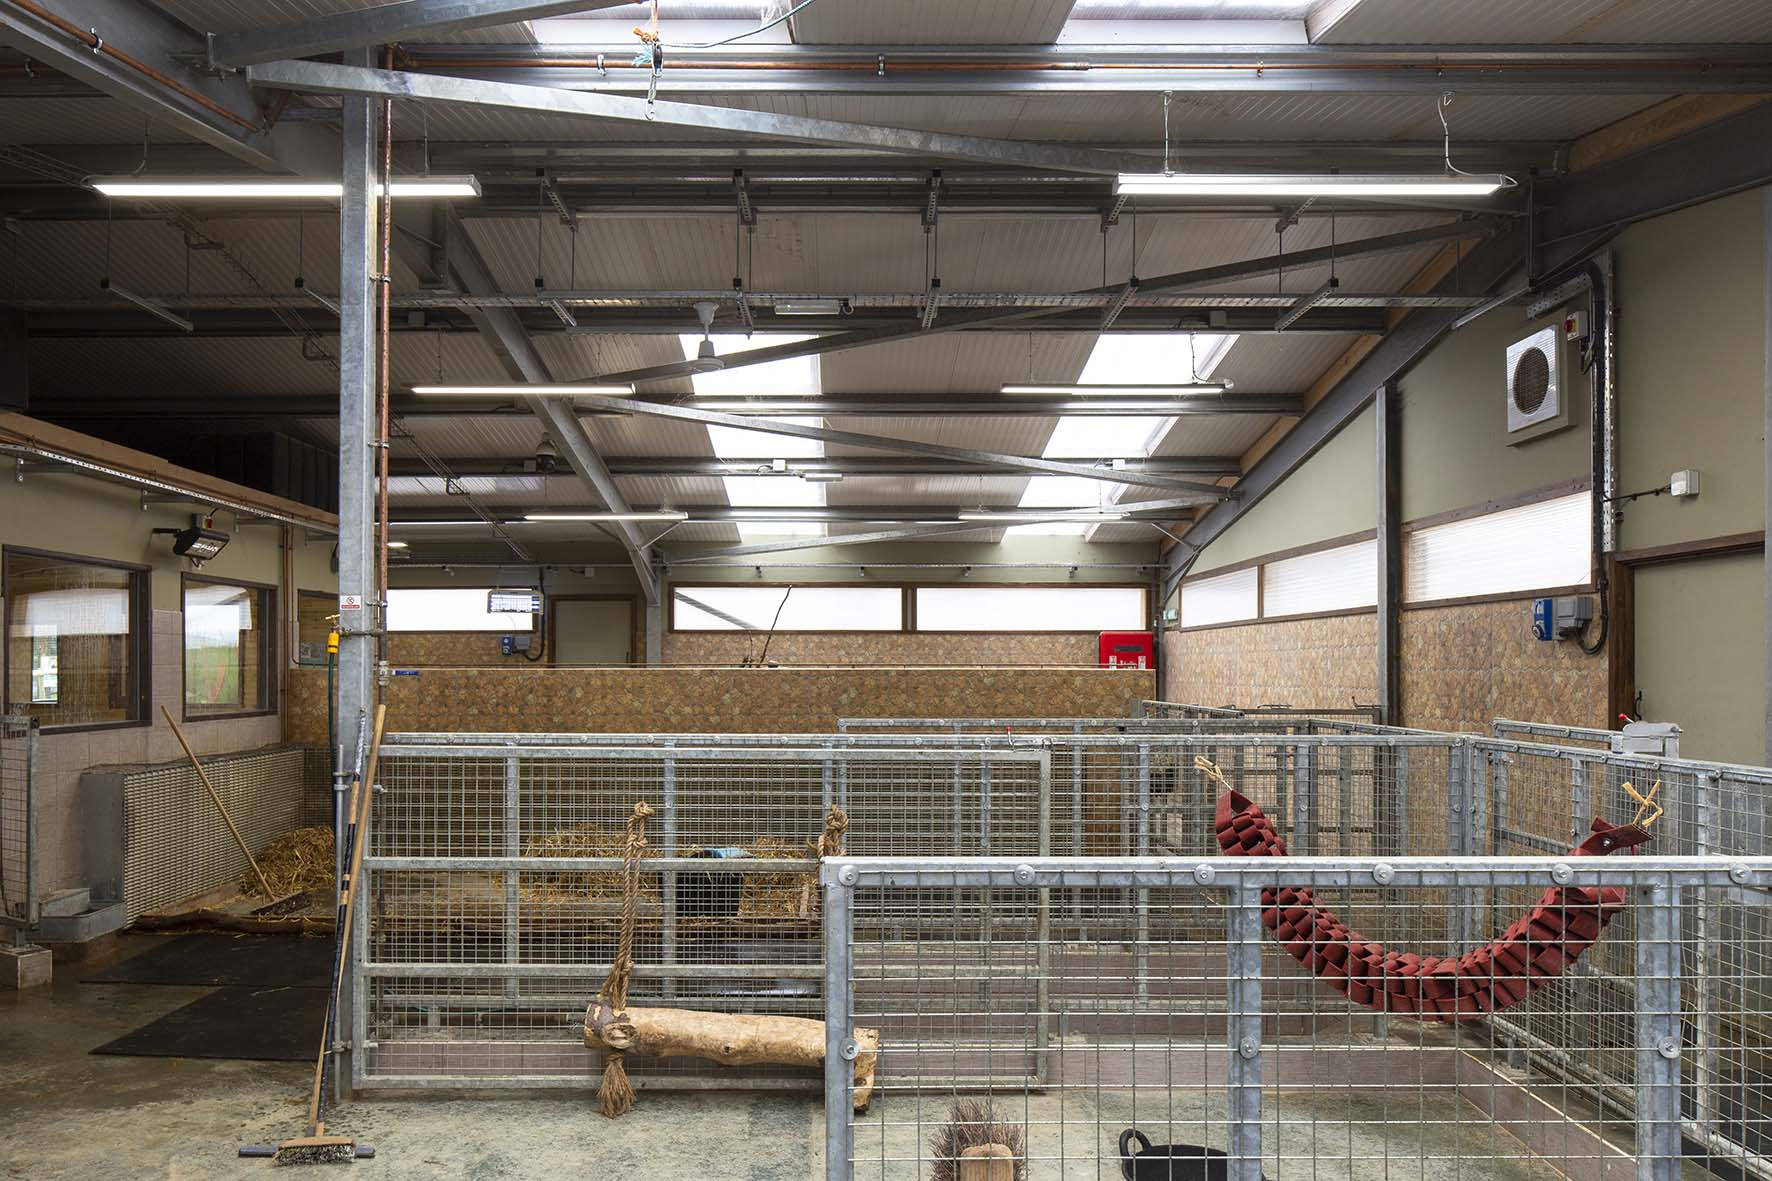 Award-winning 'green' zoo conserves energy by installing Goodlight